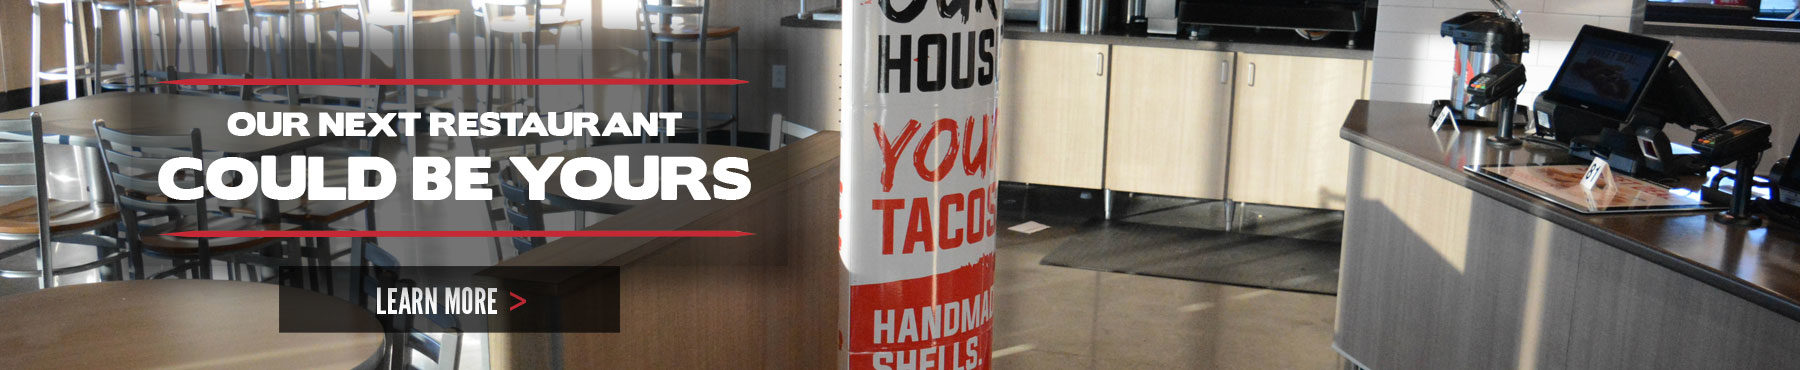 Own one of our taco franchises